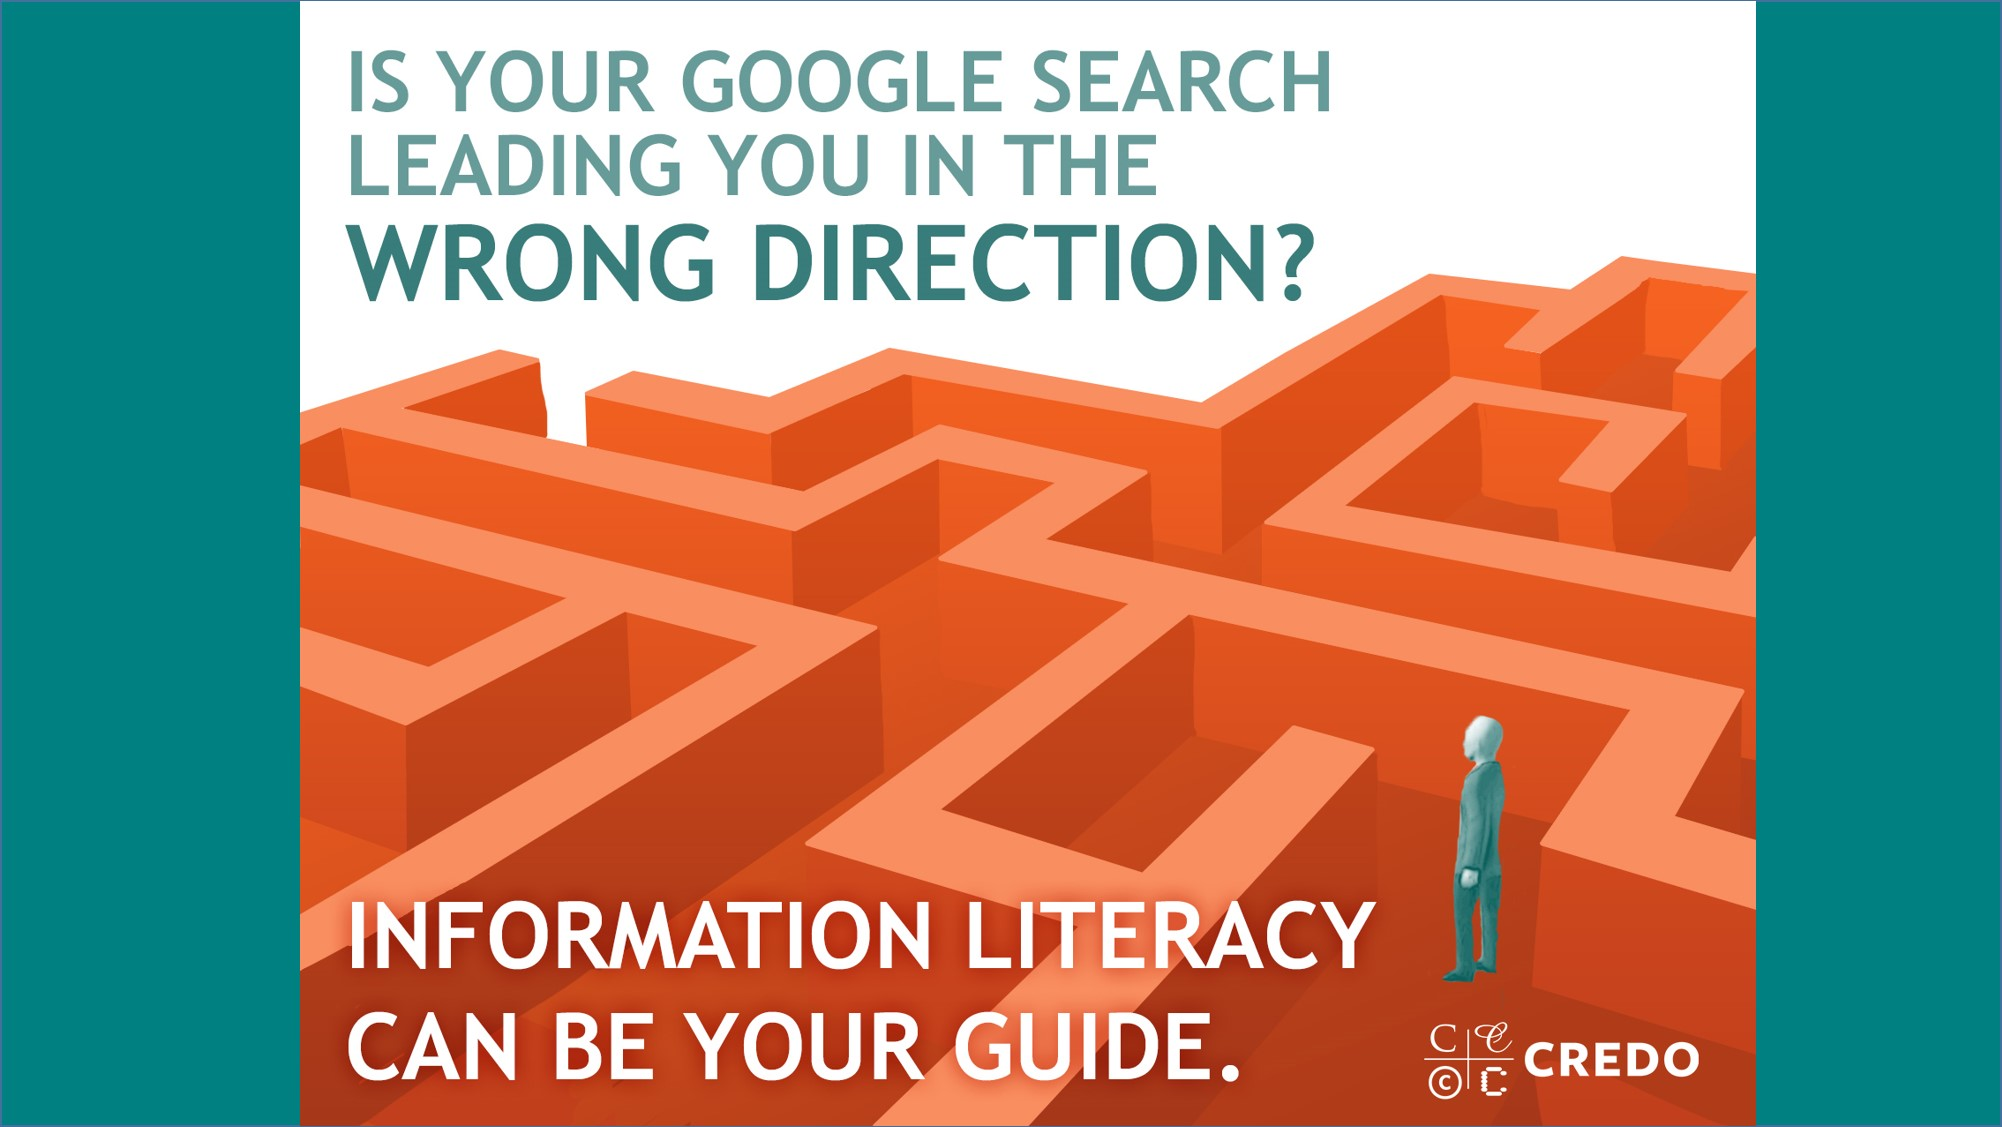 Try our Information Literacy Modules